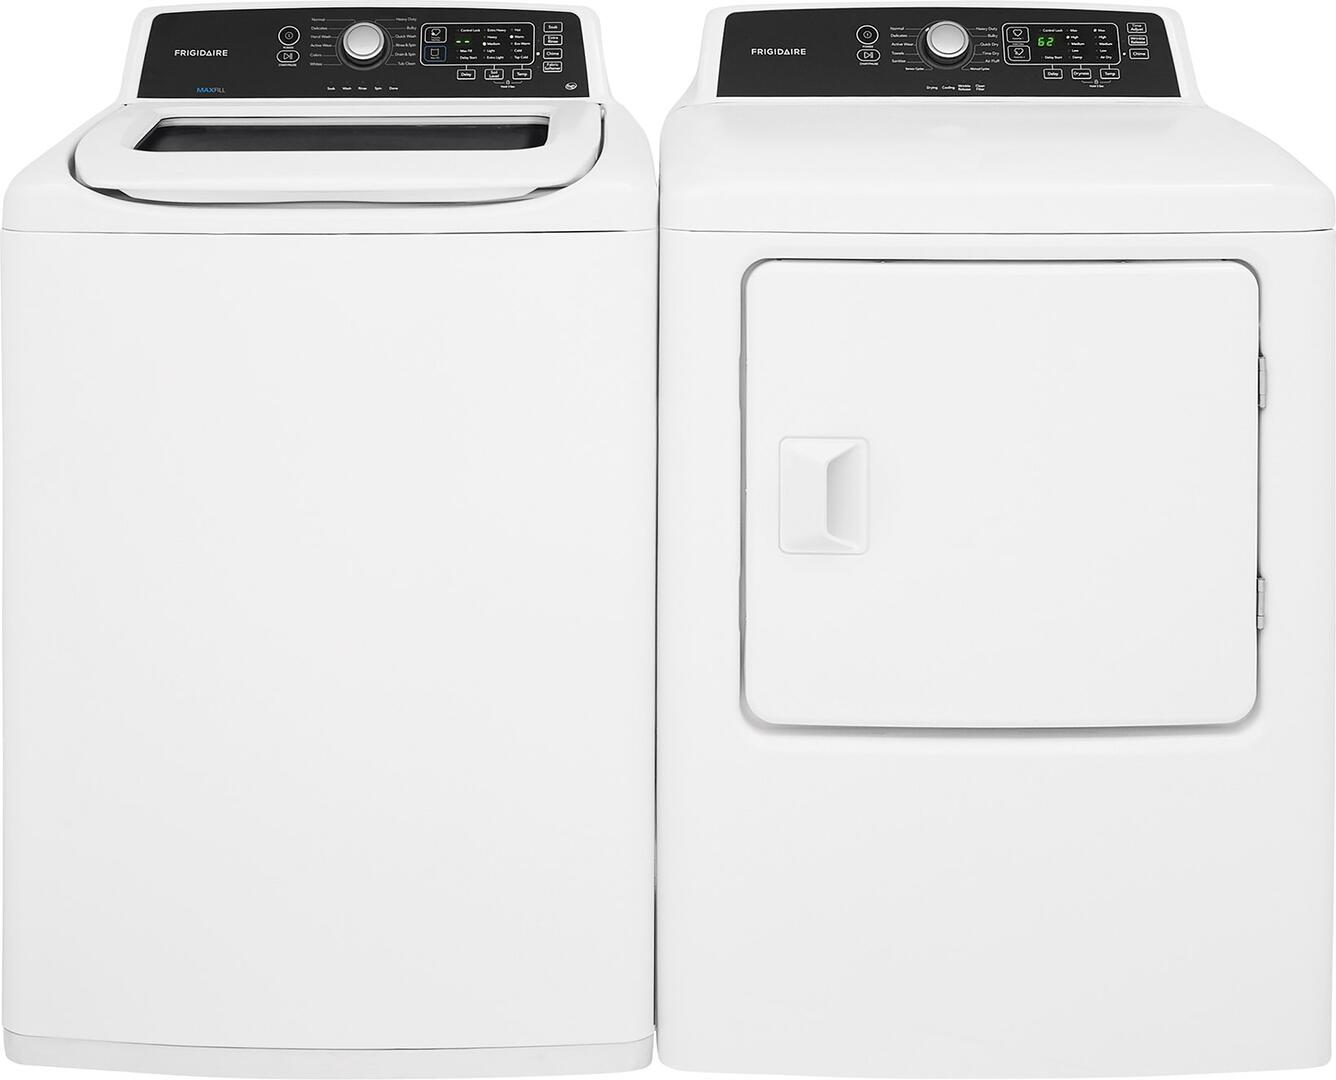 Frigidaire warranty check - Express coupin code